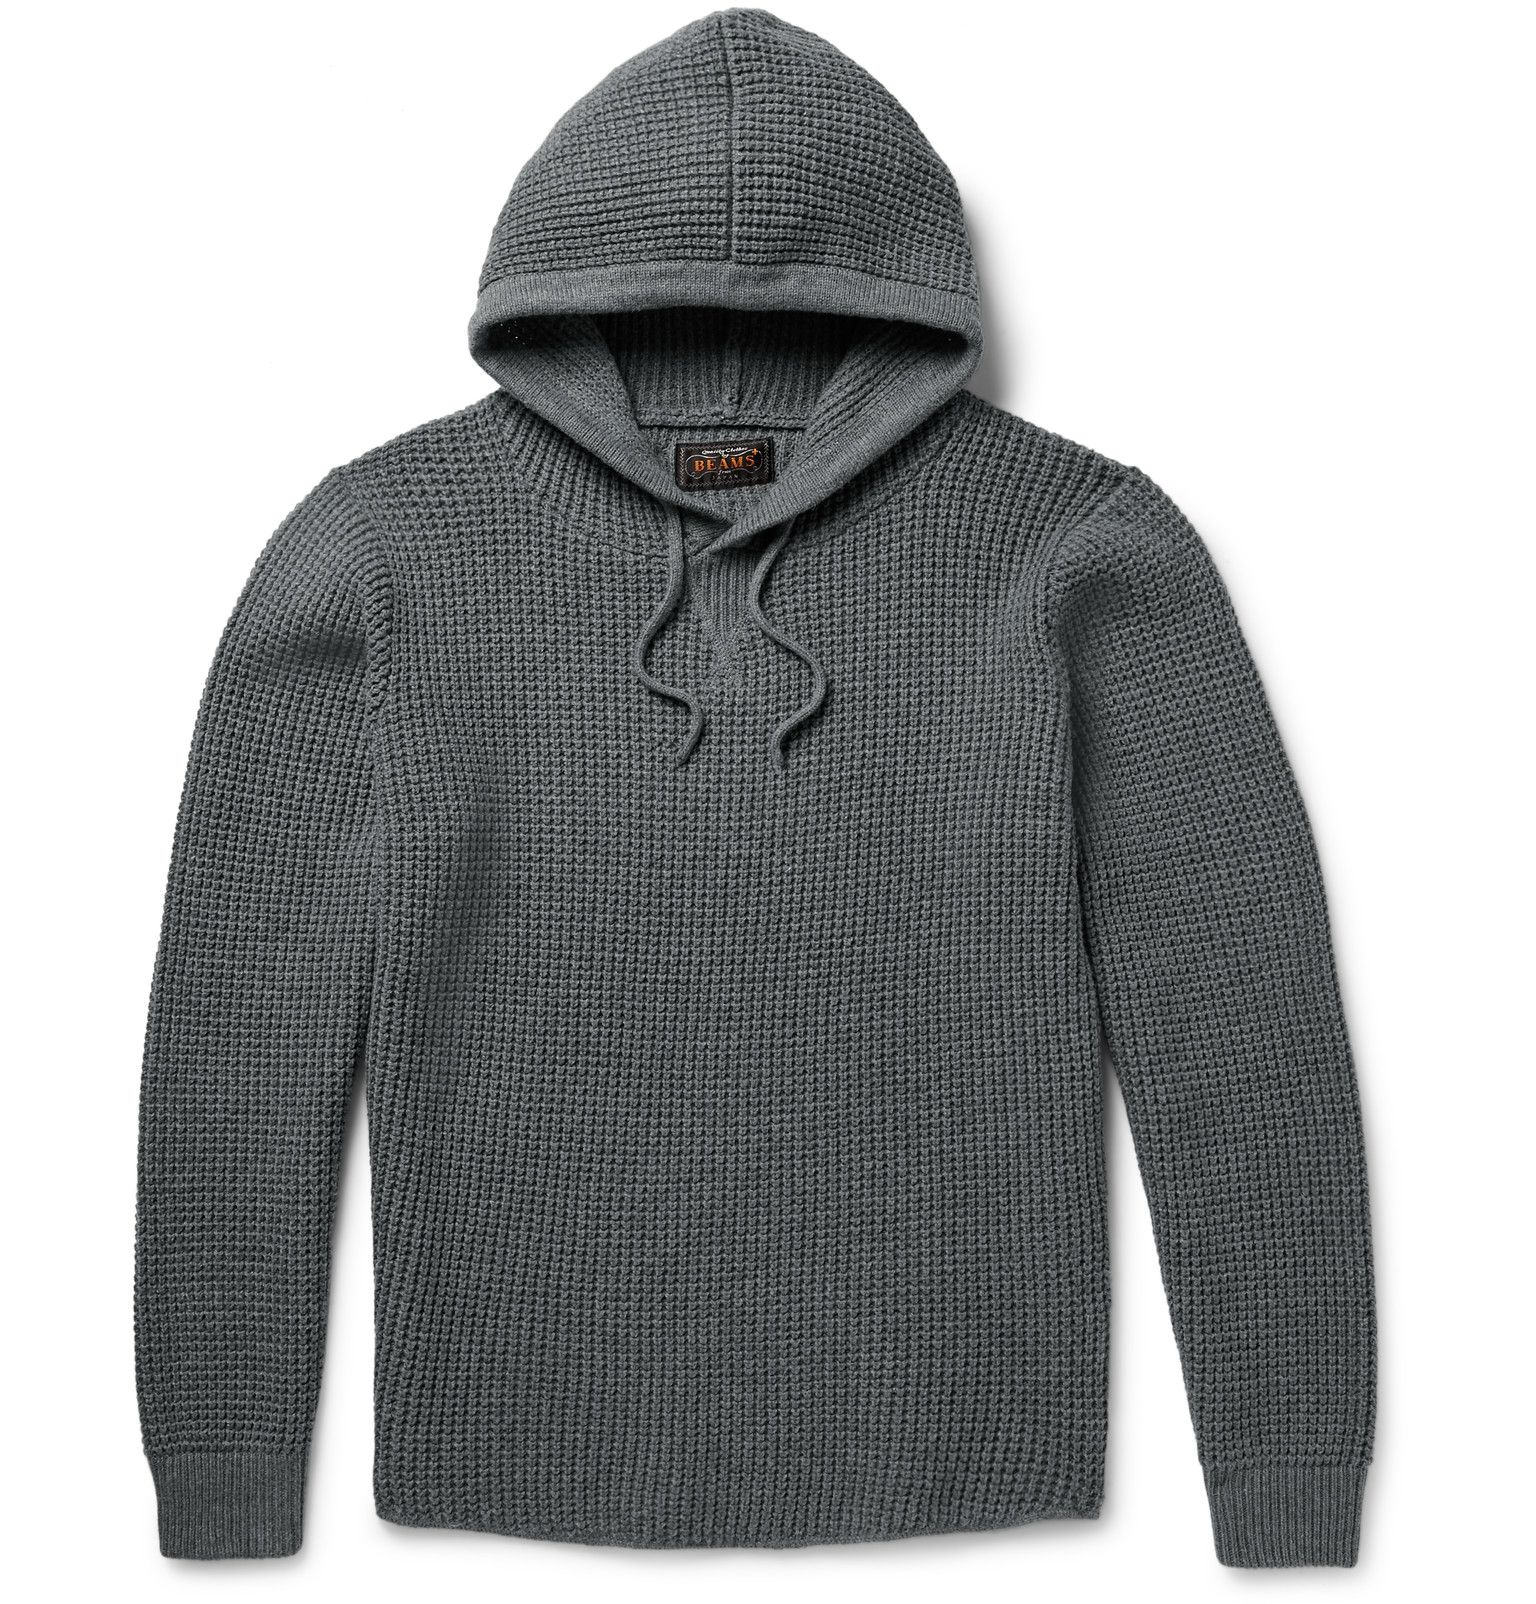 Pin by Ross Calmus on buy Hoodies, Waffle knit, Cotton